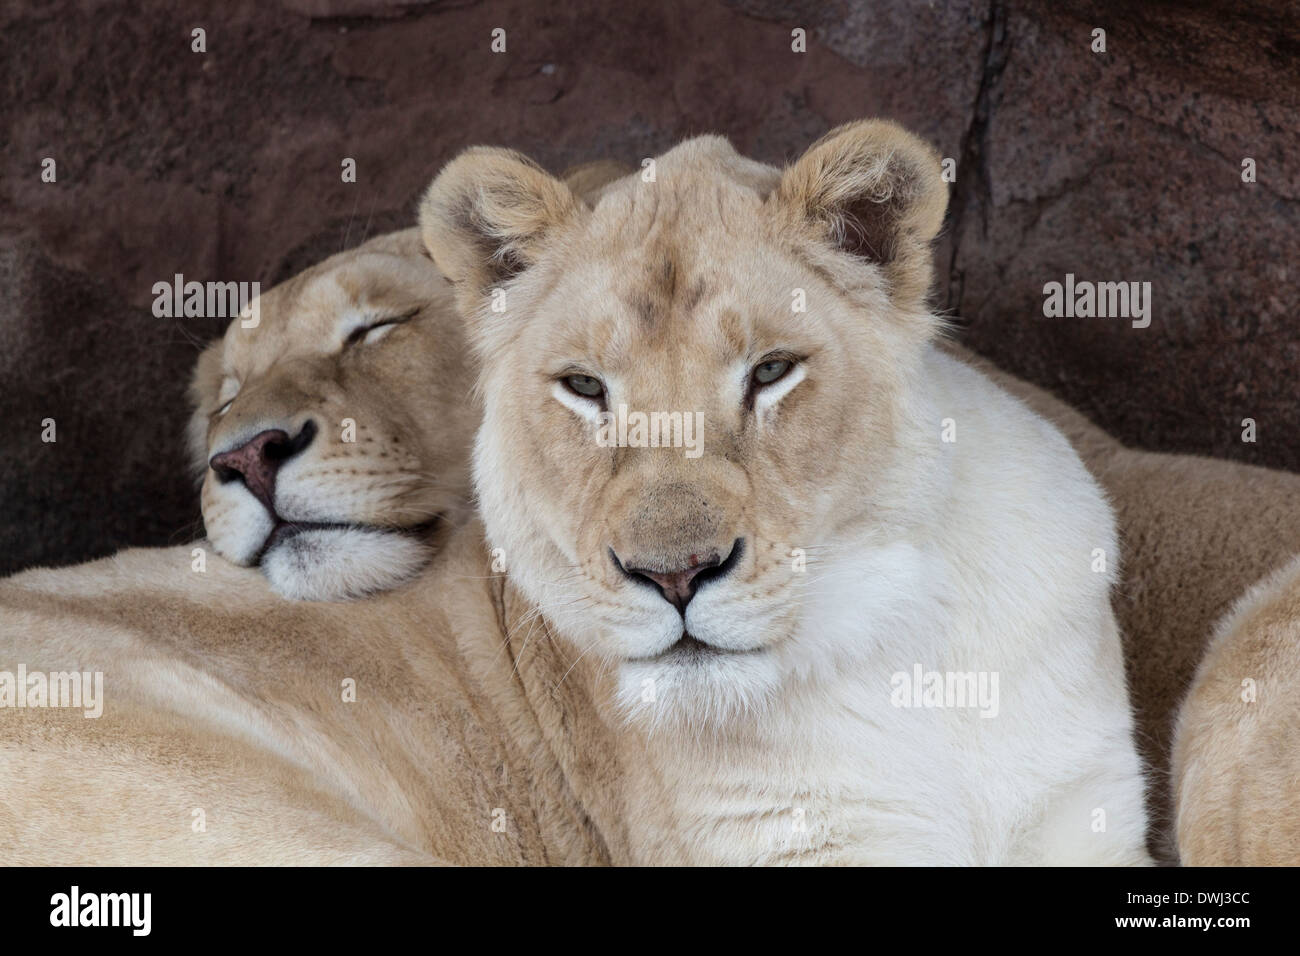 two-white-lionesses-at-the-toronto-zoo-DWJ3CC.jpg